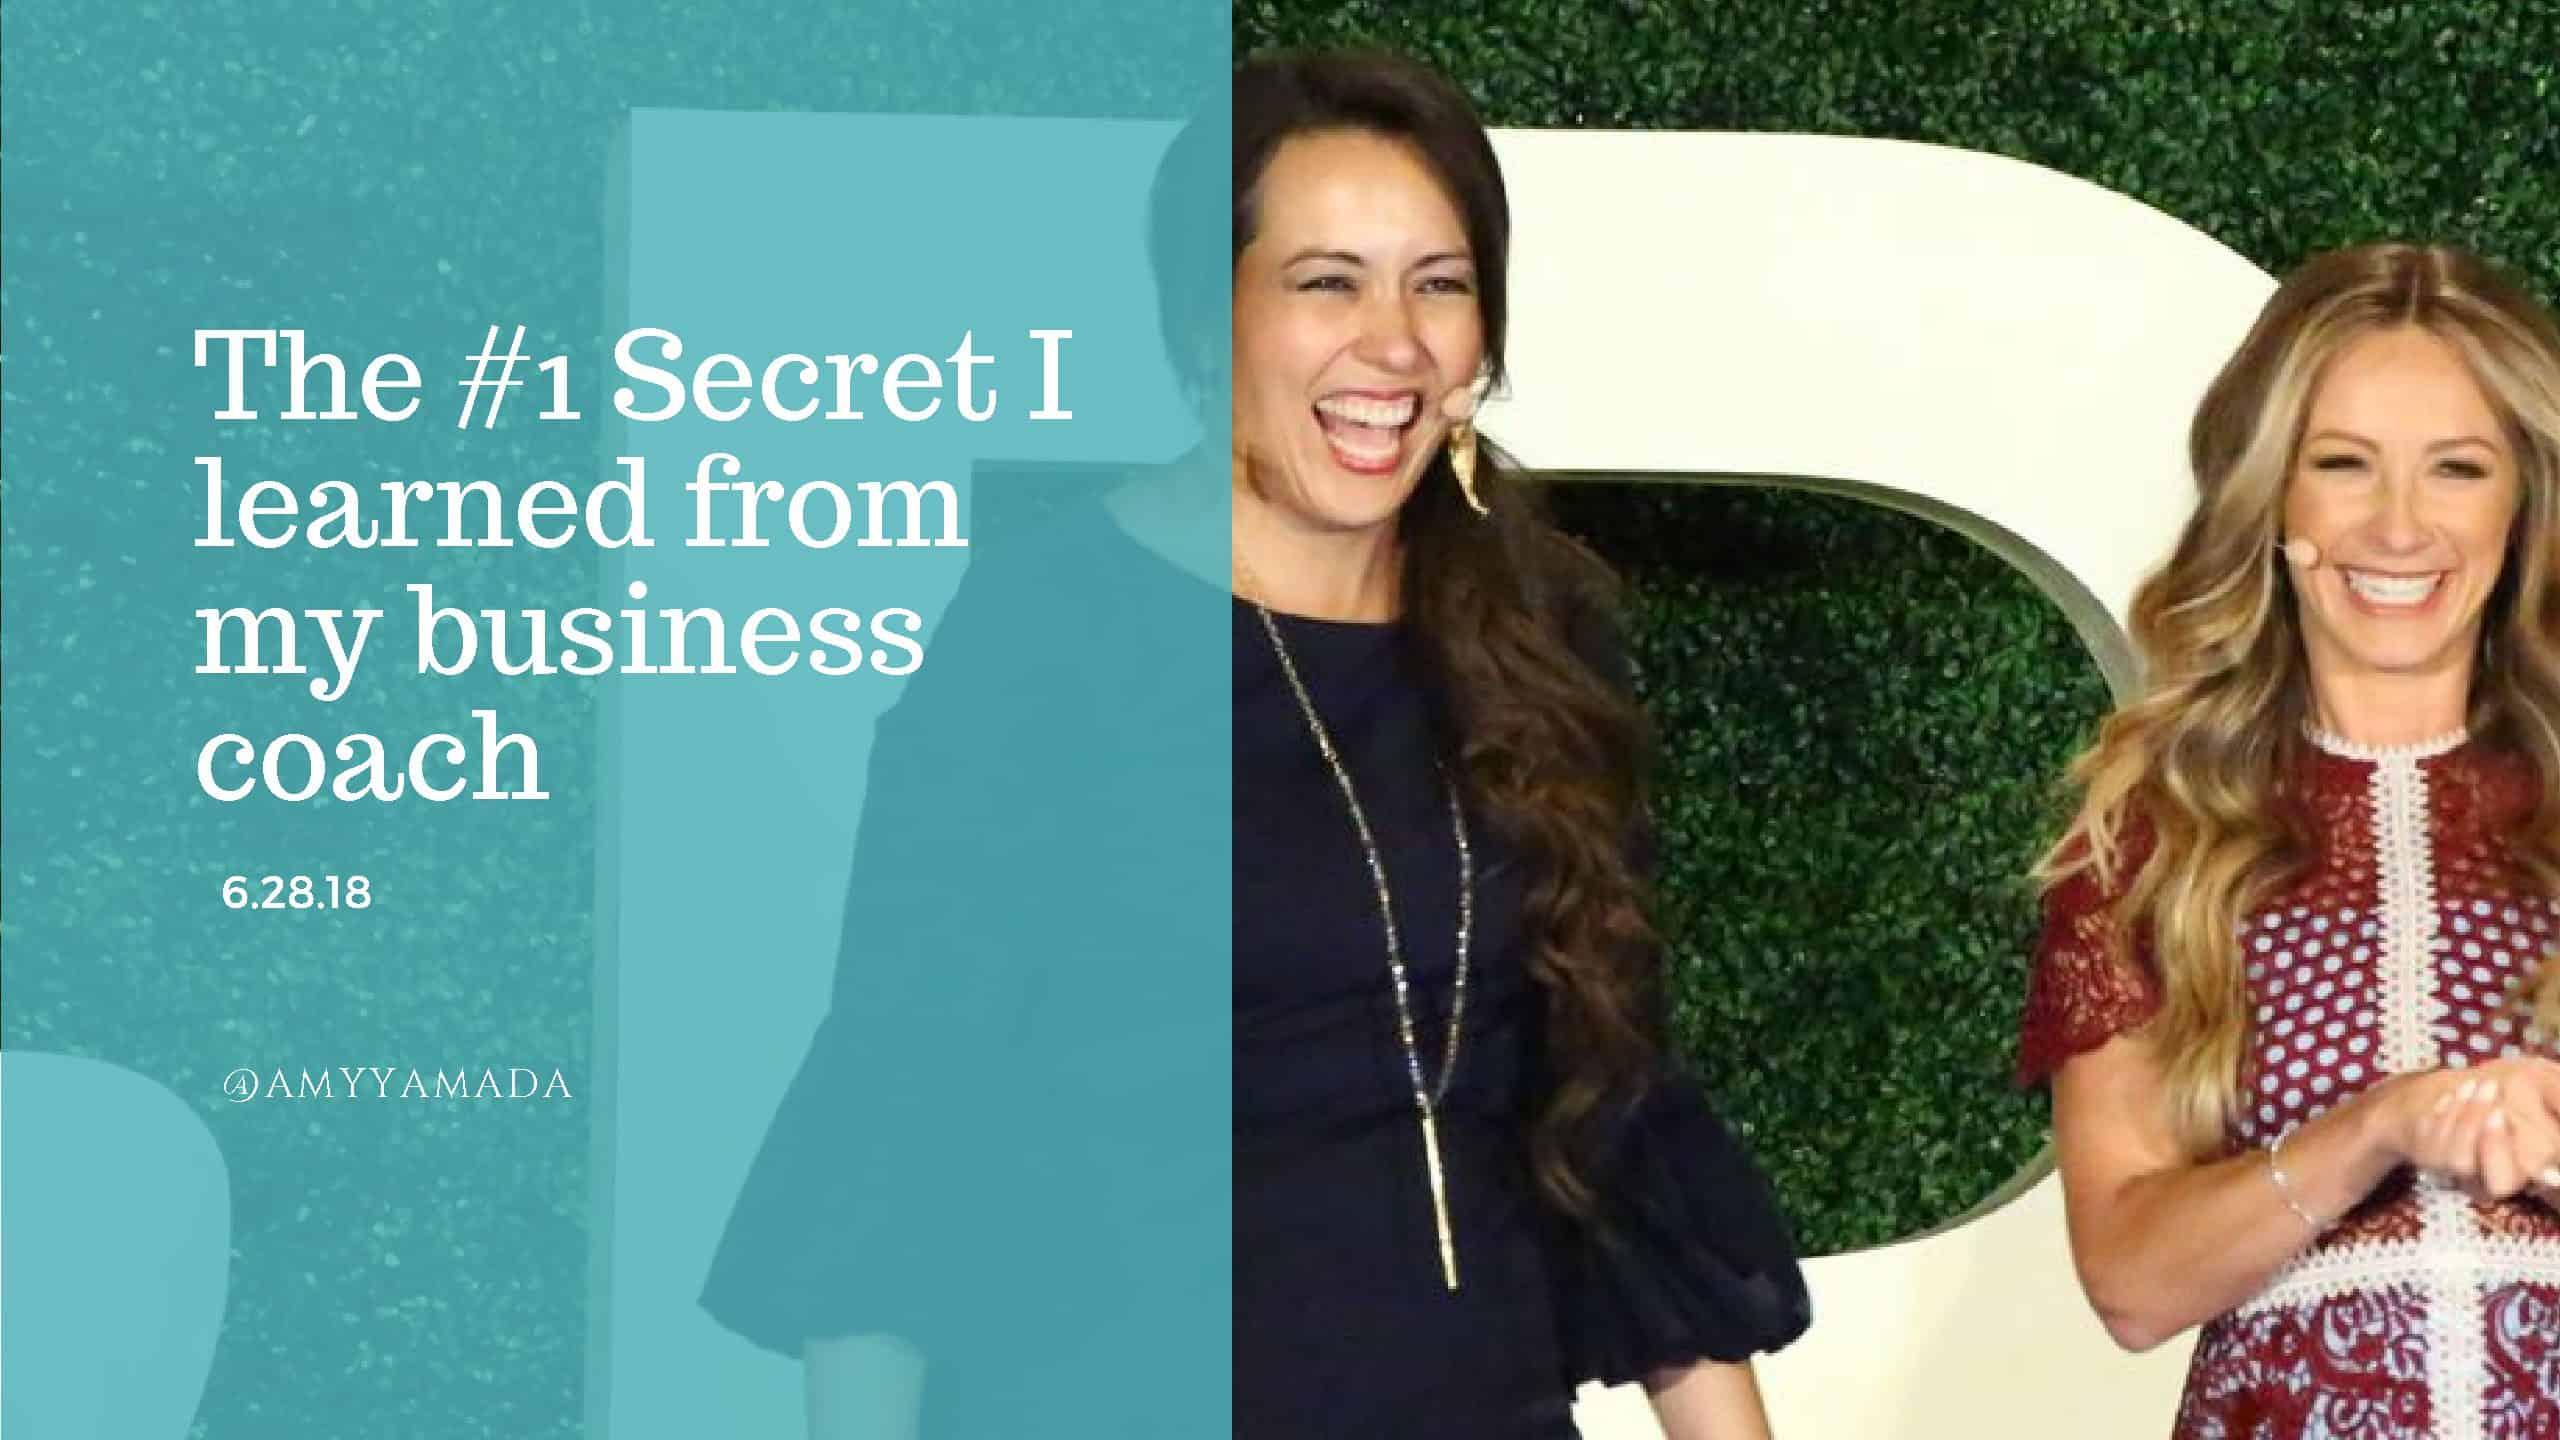 The #1 Secret I Learned From My Business Coach